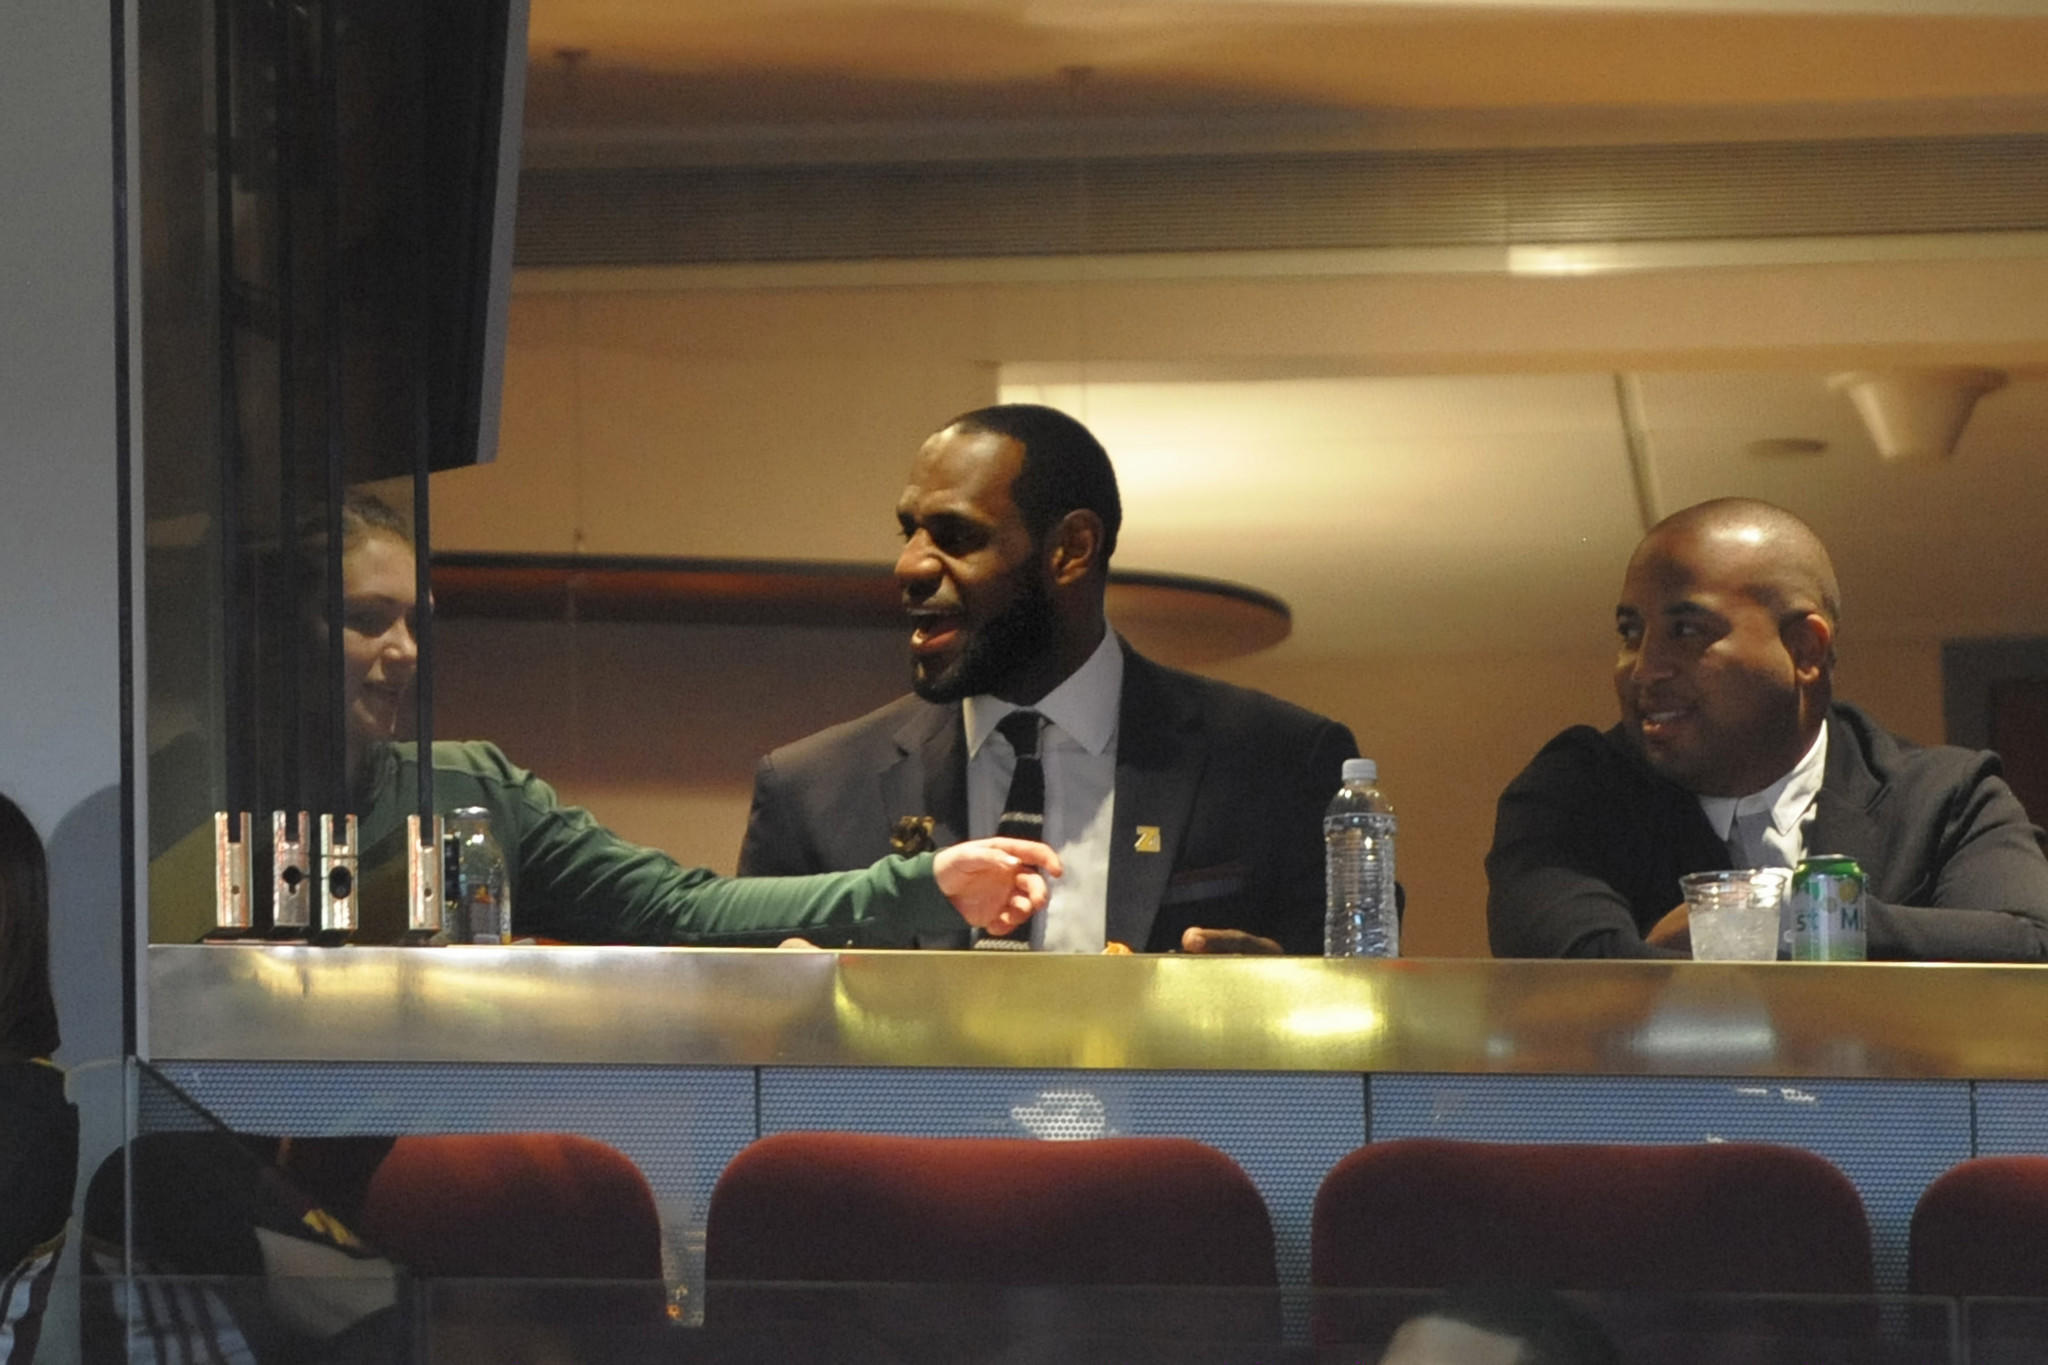 Miami Heat superstar LeBron James, center, sits in a suite during a game between the Cleveland Cavaliers and the New York Knicks at Quicken Loans Arena.